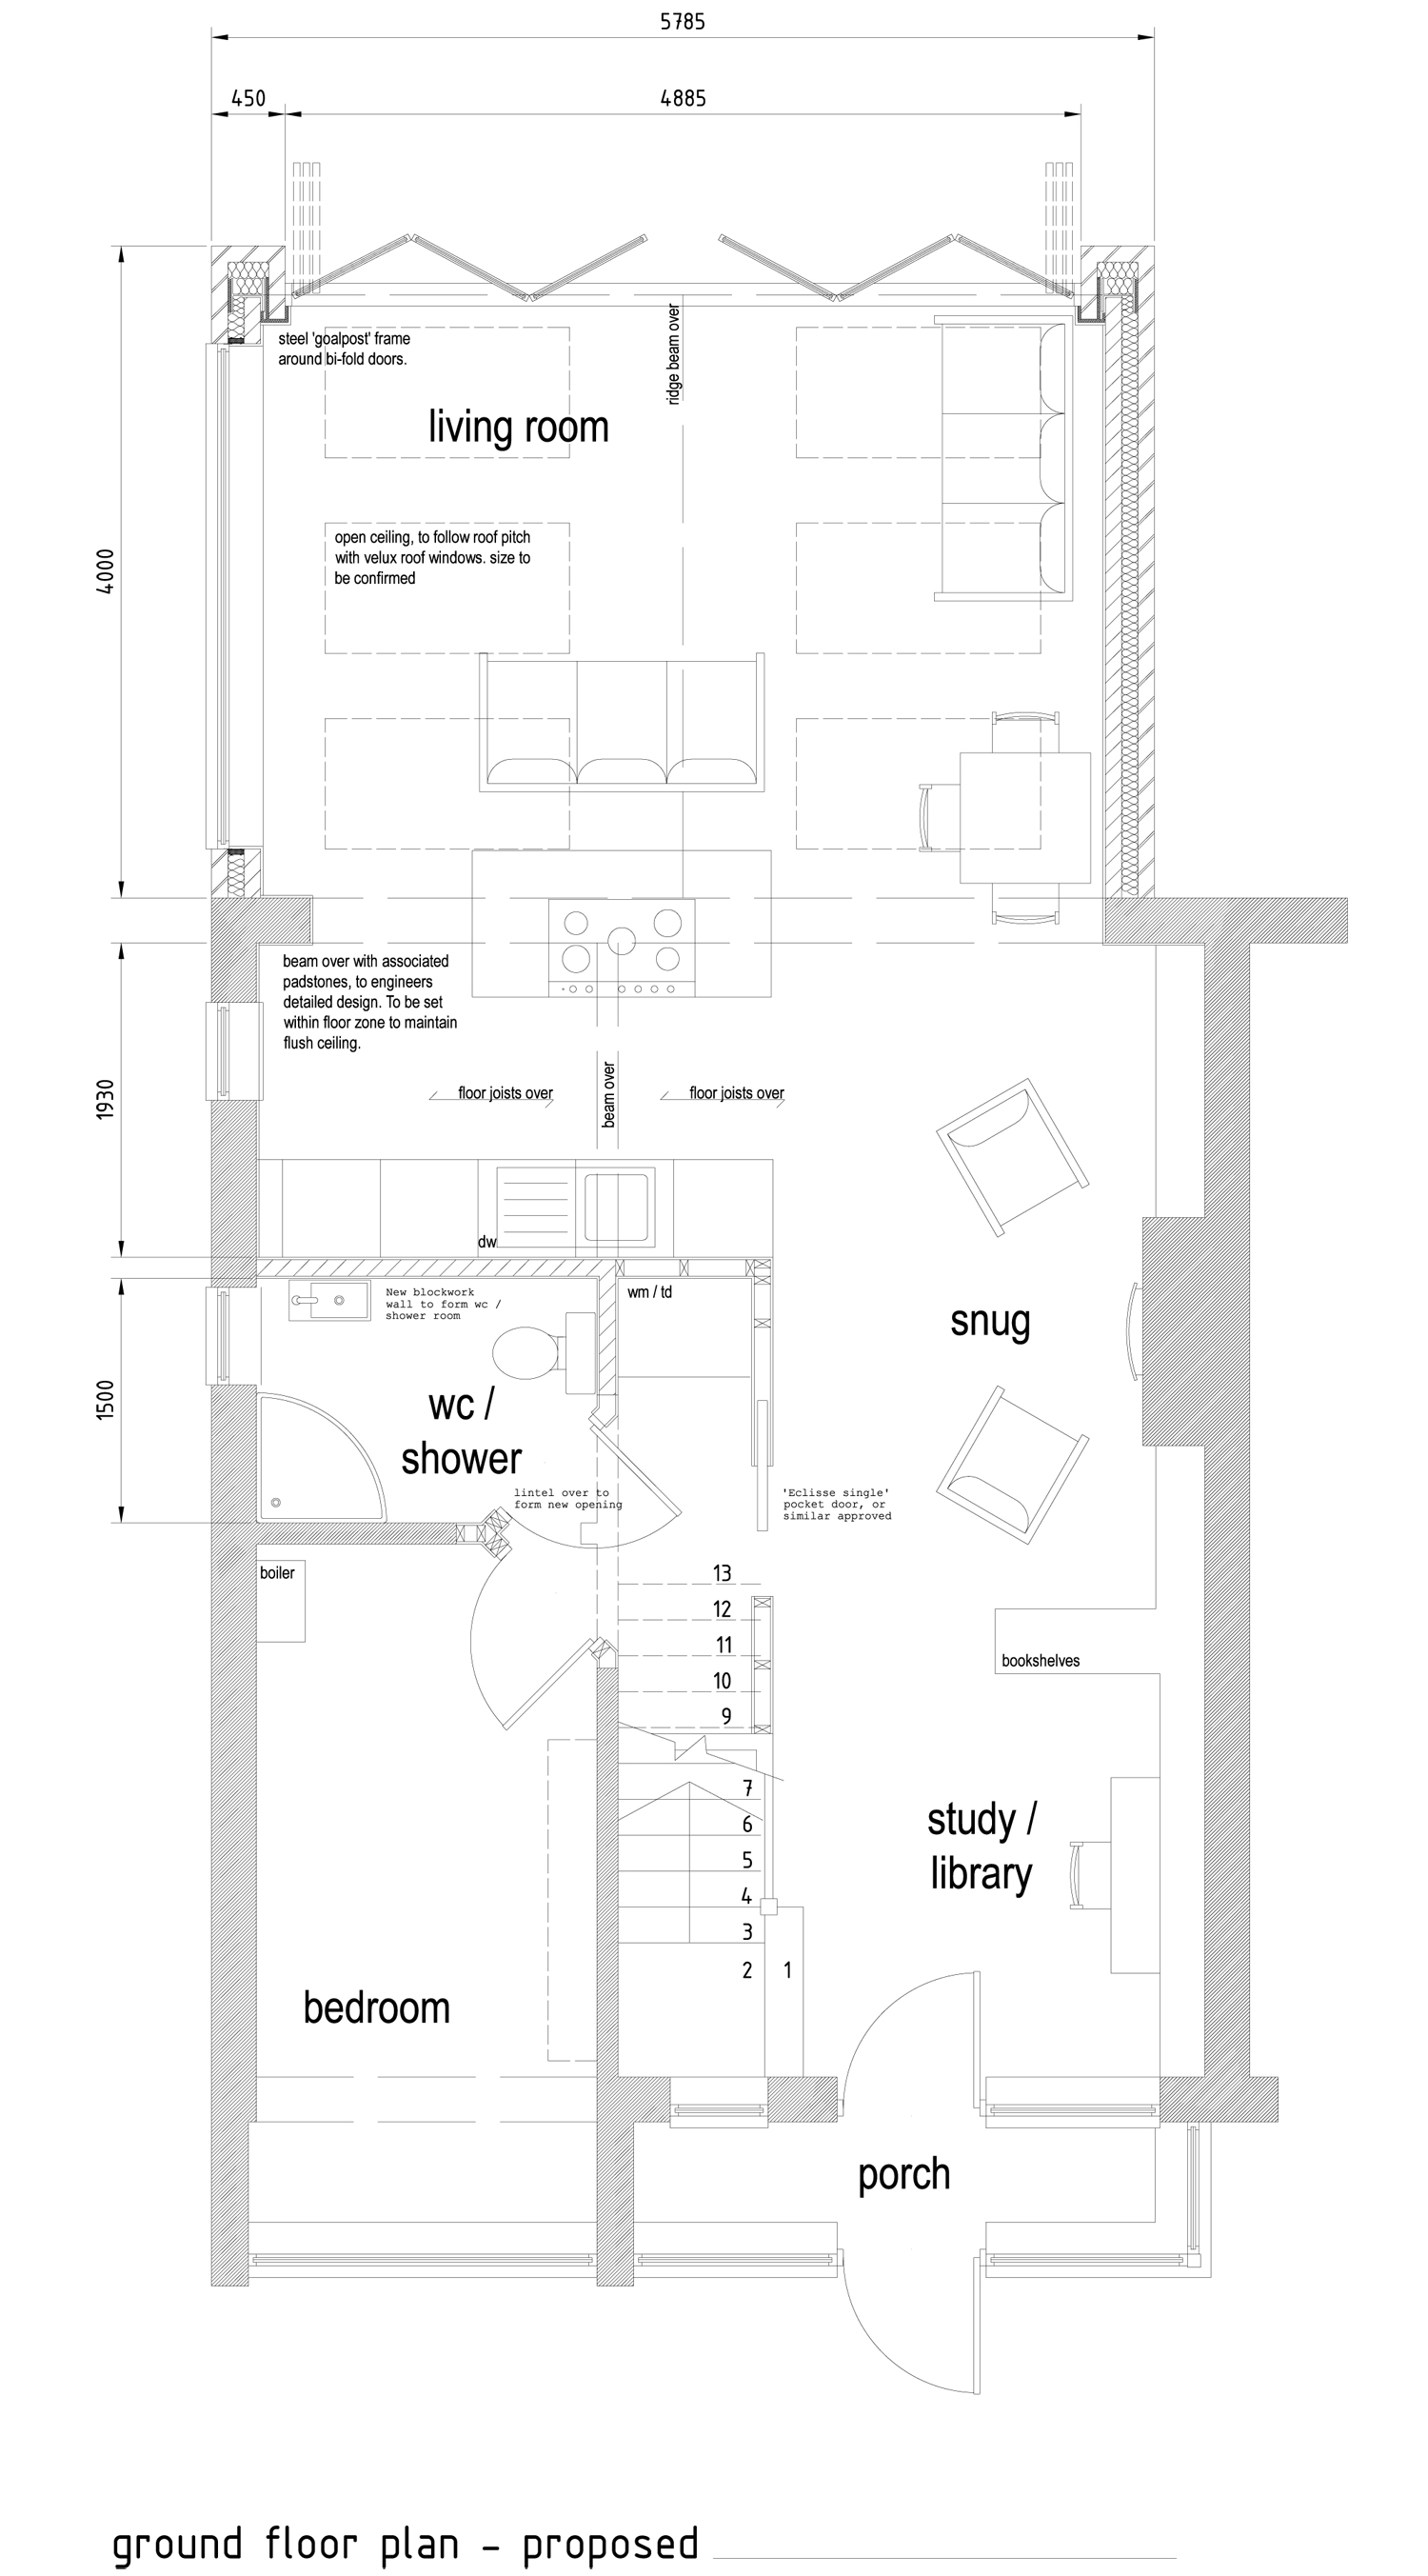 Reconfigured internal house layout